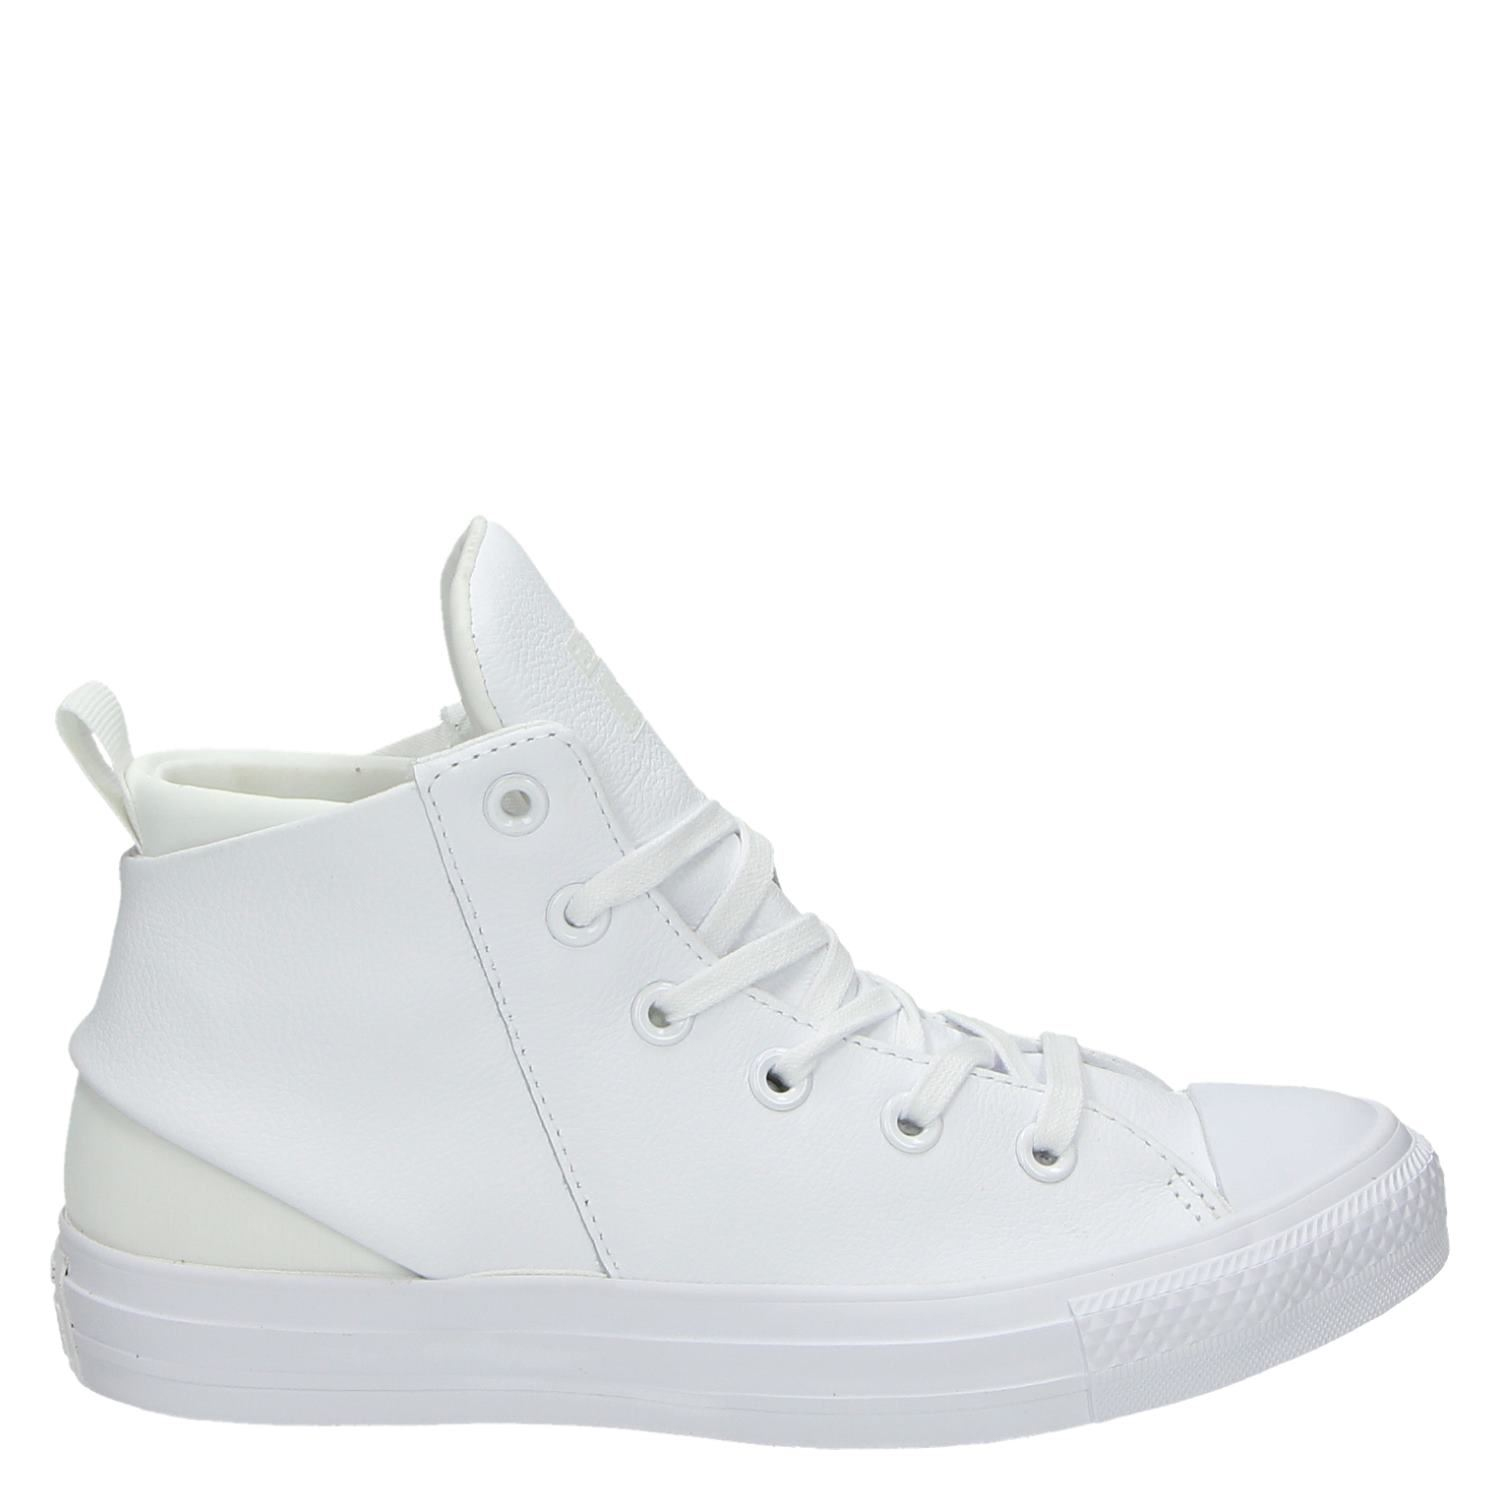 df2d7bfe69a Converse dames hoge sneakers wit